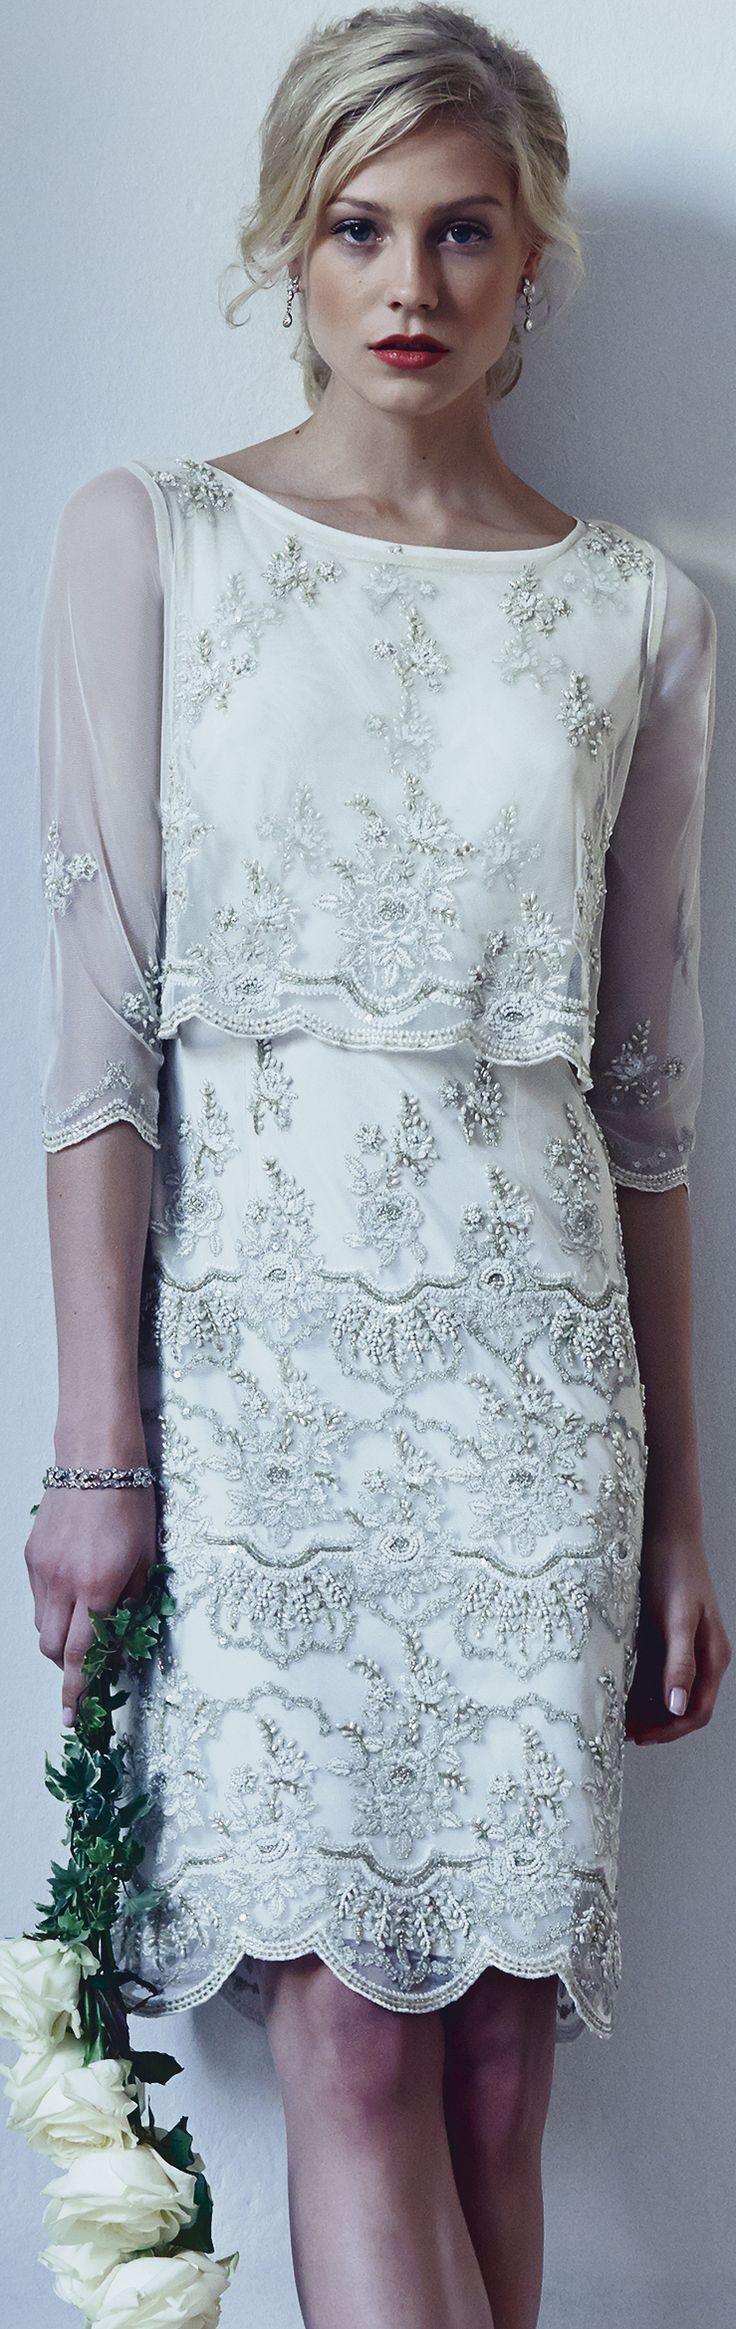 Pin by Dating Safe on Brides | Pinterest | Wedding dress, Articles ...